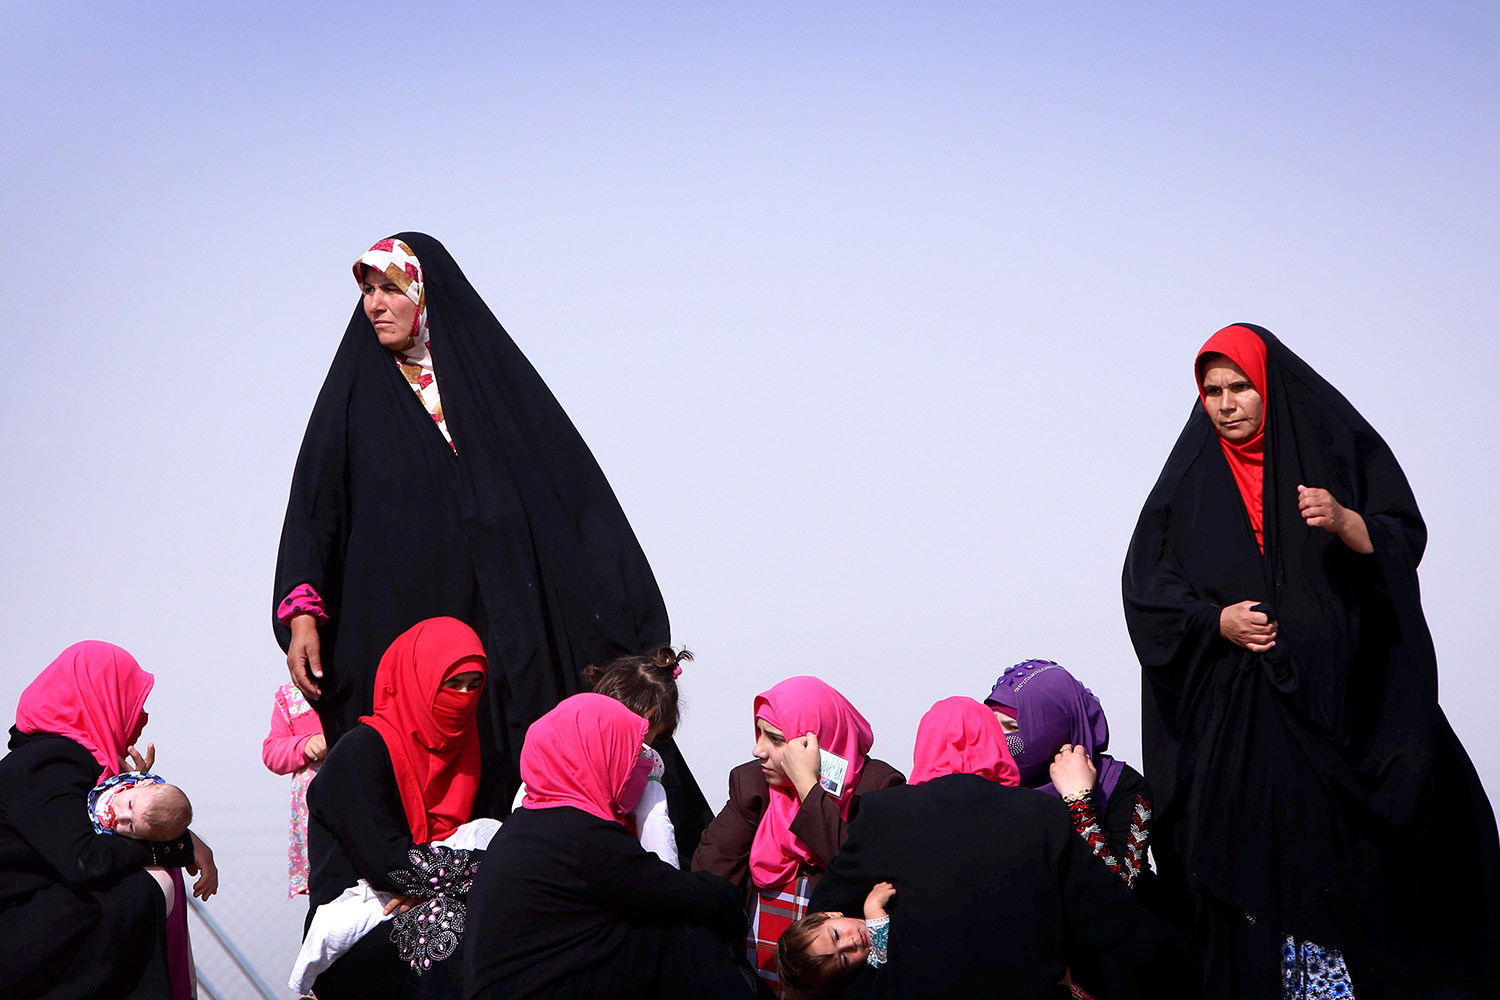 June 13, 2014. Iraqi women gather at a temporary camp set up to shelter civilians fleeing violence in Mosul.